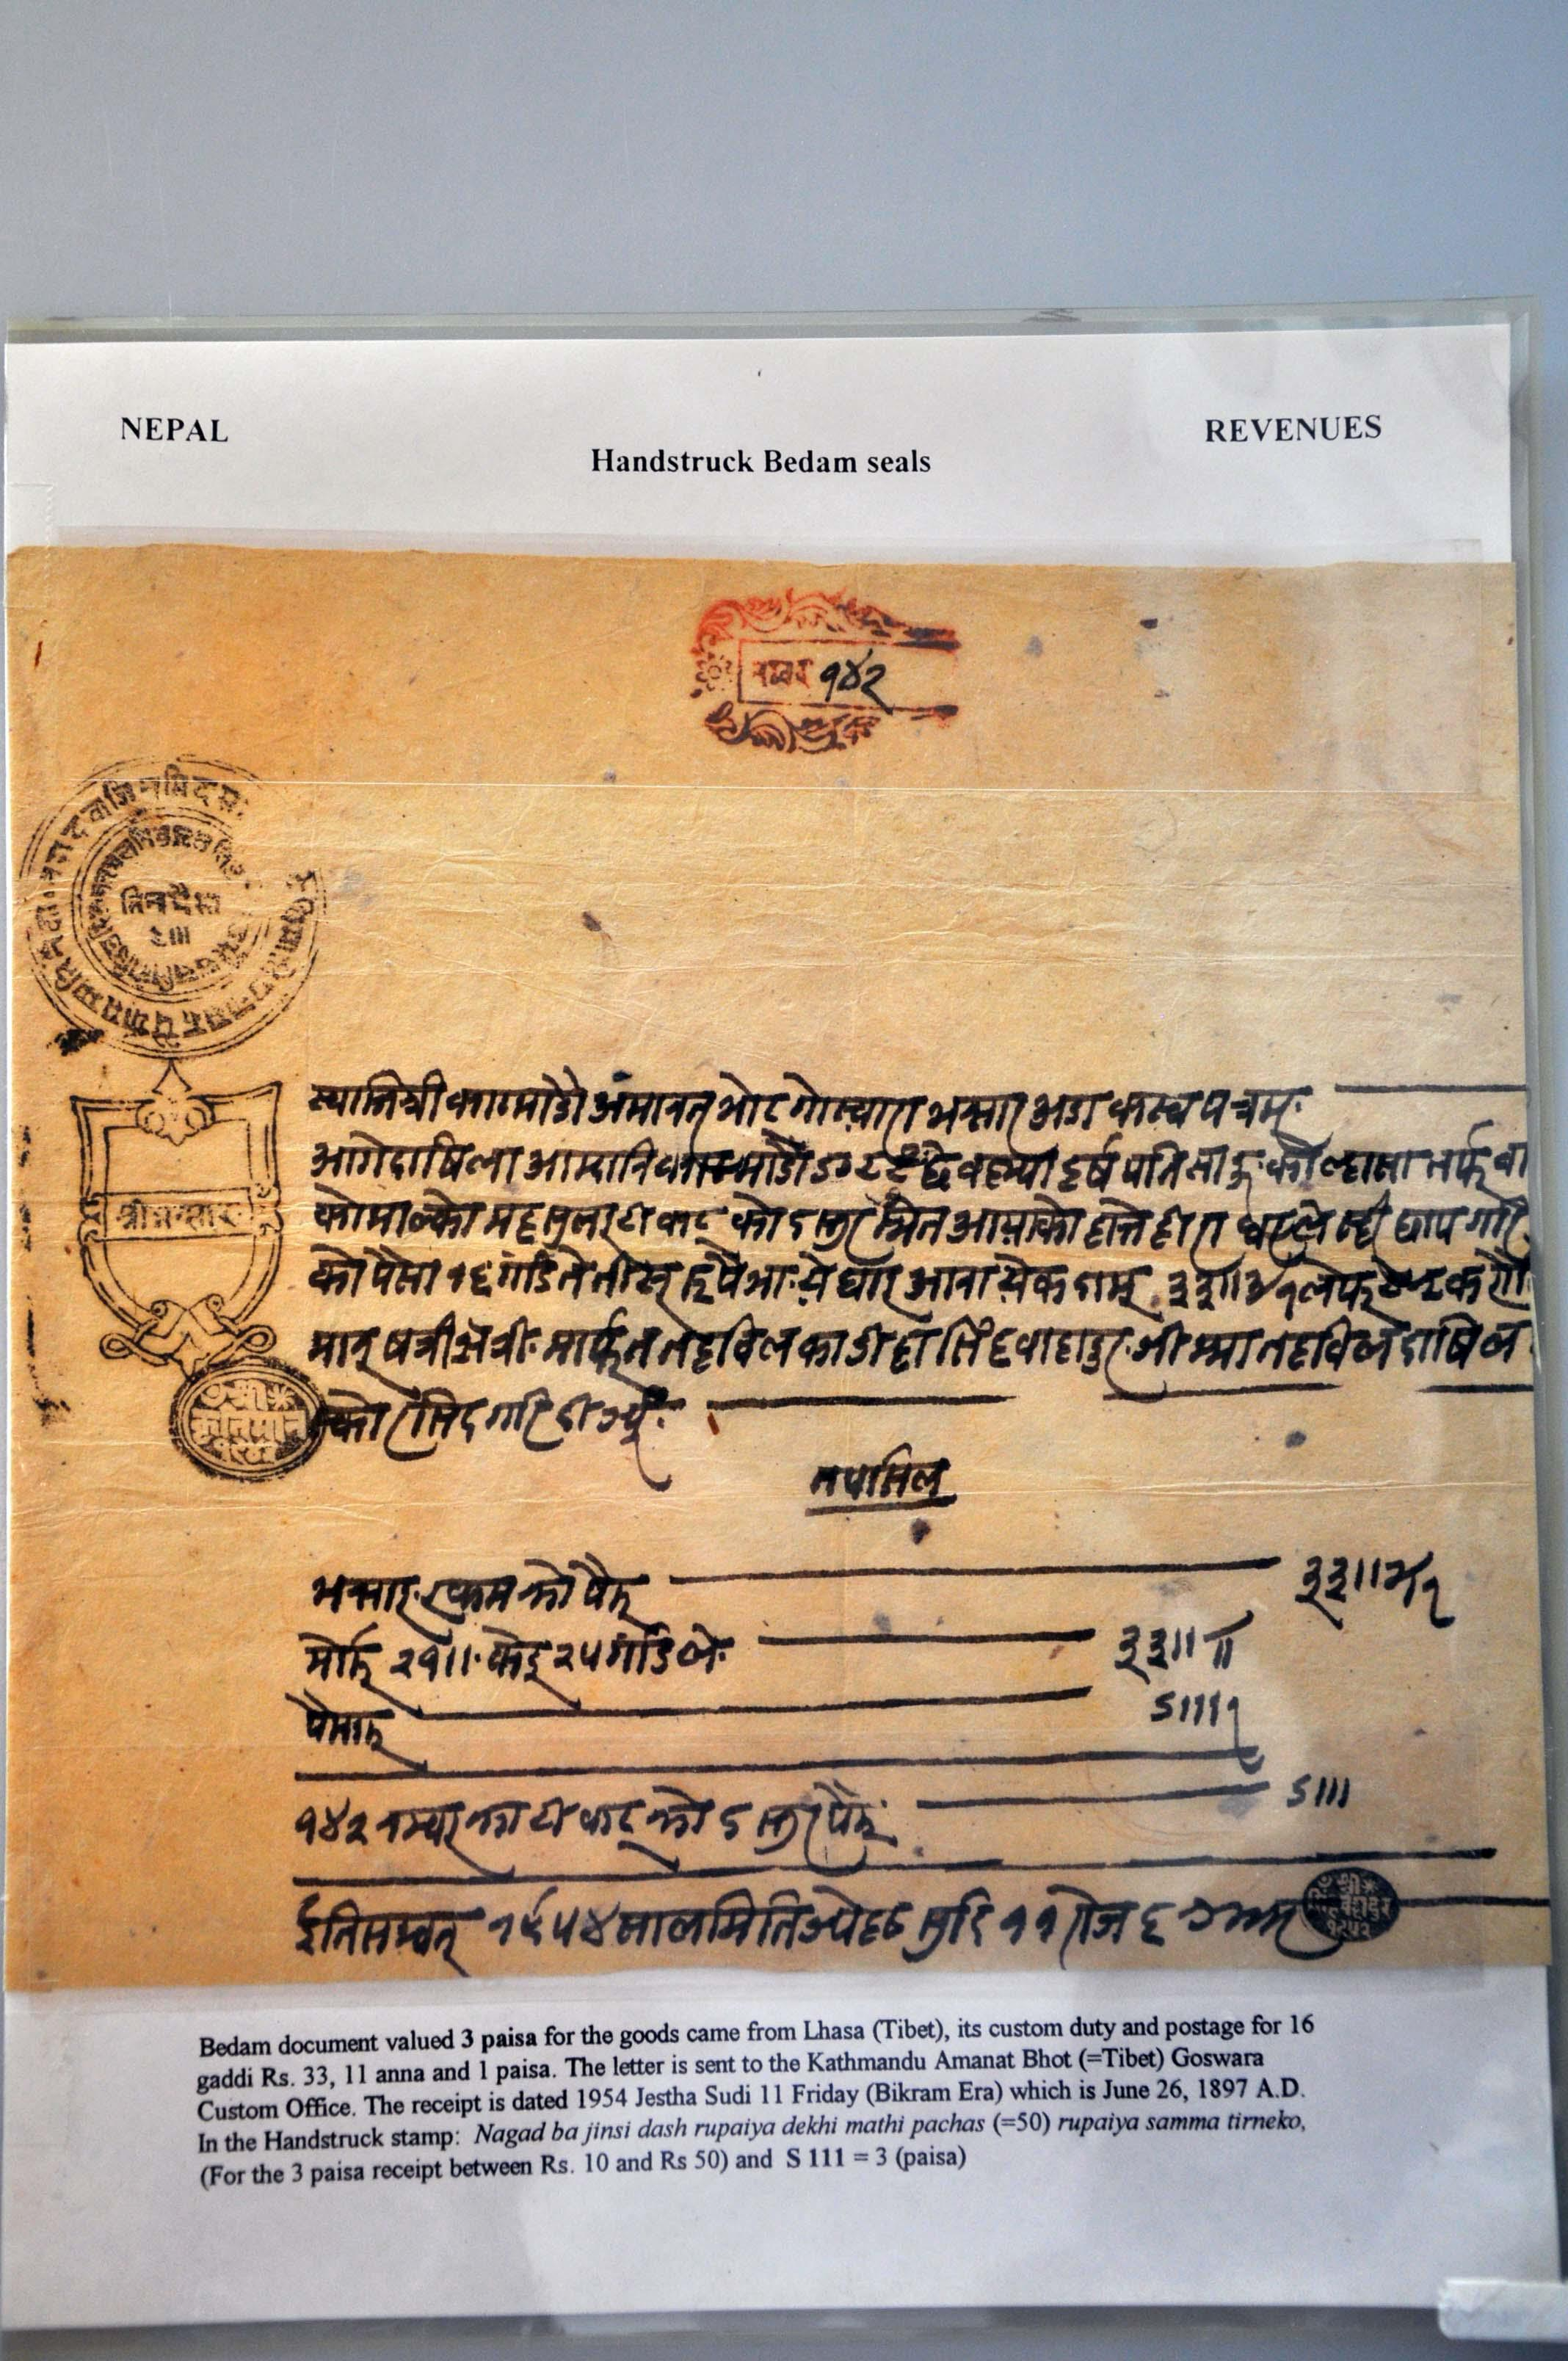 Lot 87 - Great Britain and former colonies Nepal -  Corinphila Veilingen Auction 245-246 Day 1 - Nepal - The Dick van der Wateren Collection, Foreign countries - Single lots, Picture postcards